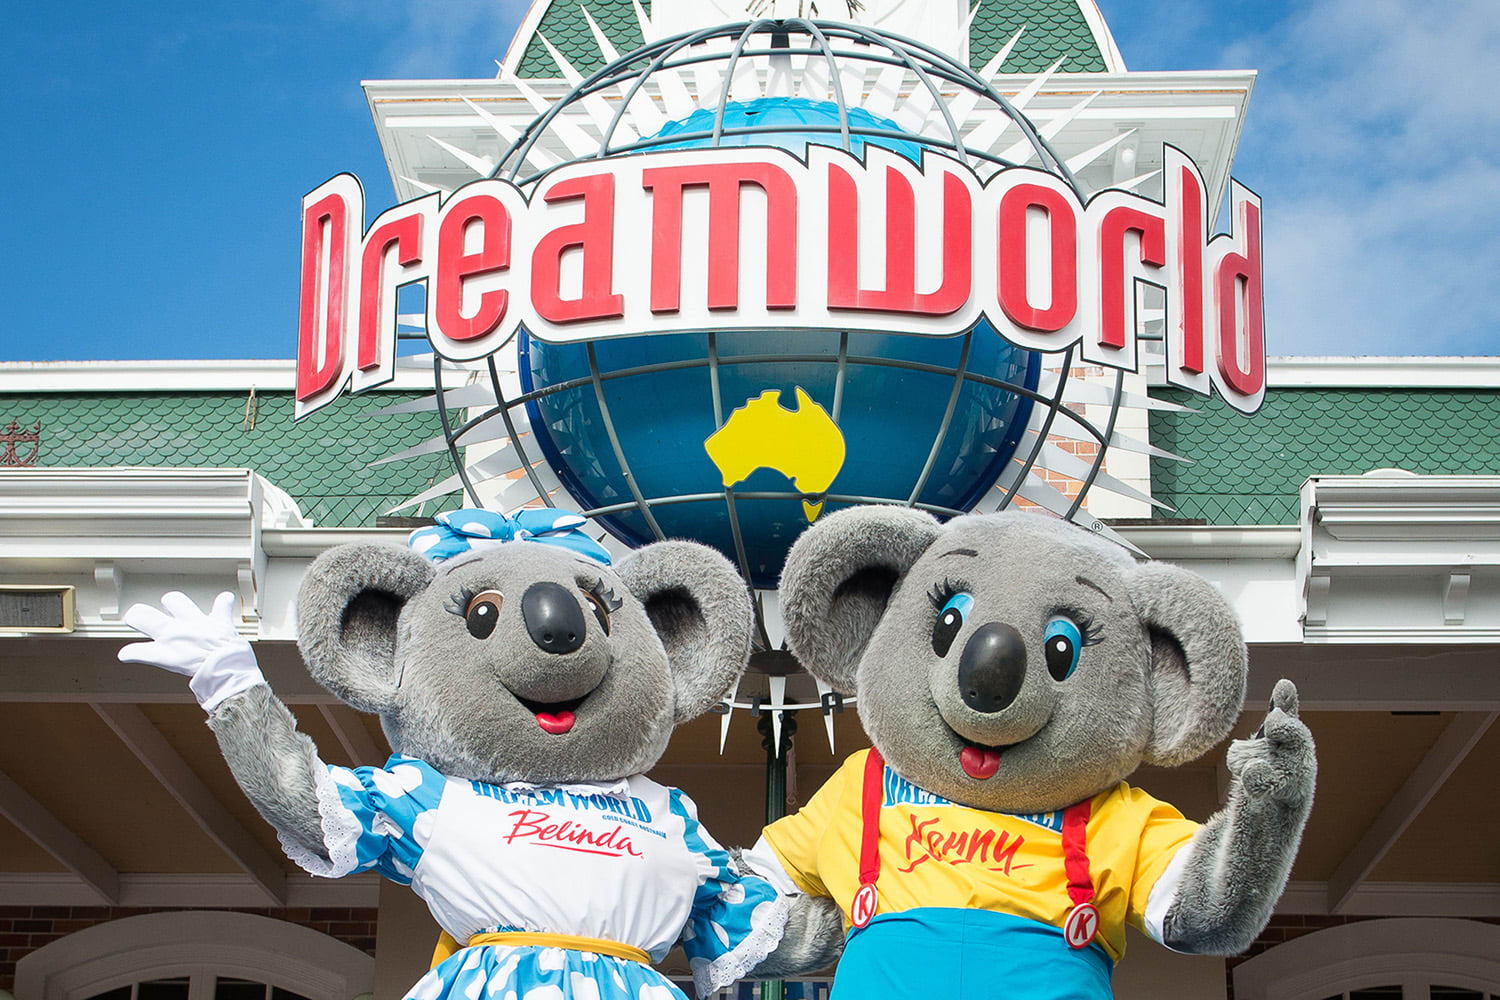 Dreamworld, WhiteWater World, SkyPoint Observation Deck, 3 Day Ticket - Gold Coast